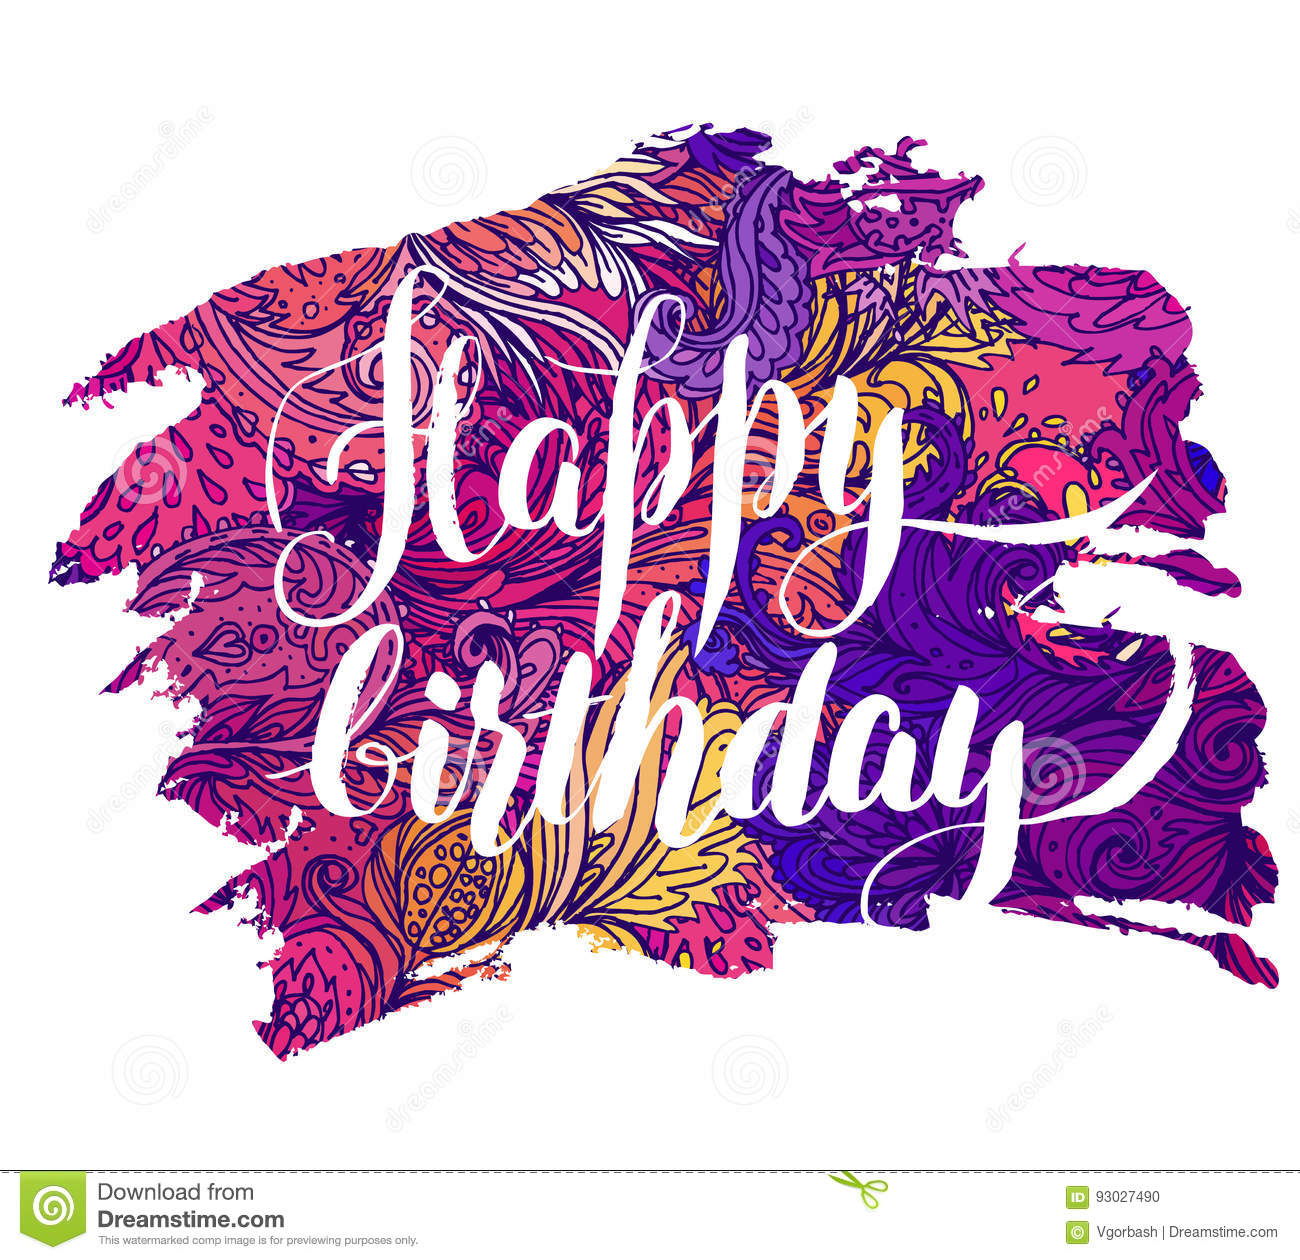 Happy Birthday Beautiful Greeting Card Bright Illustration Can Be Used As Creating Cardinvitation For Weddingbirthday And Other Holiday Cute